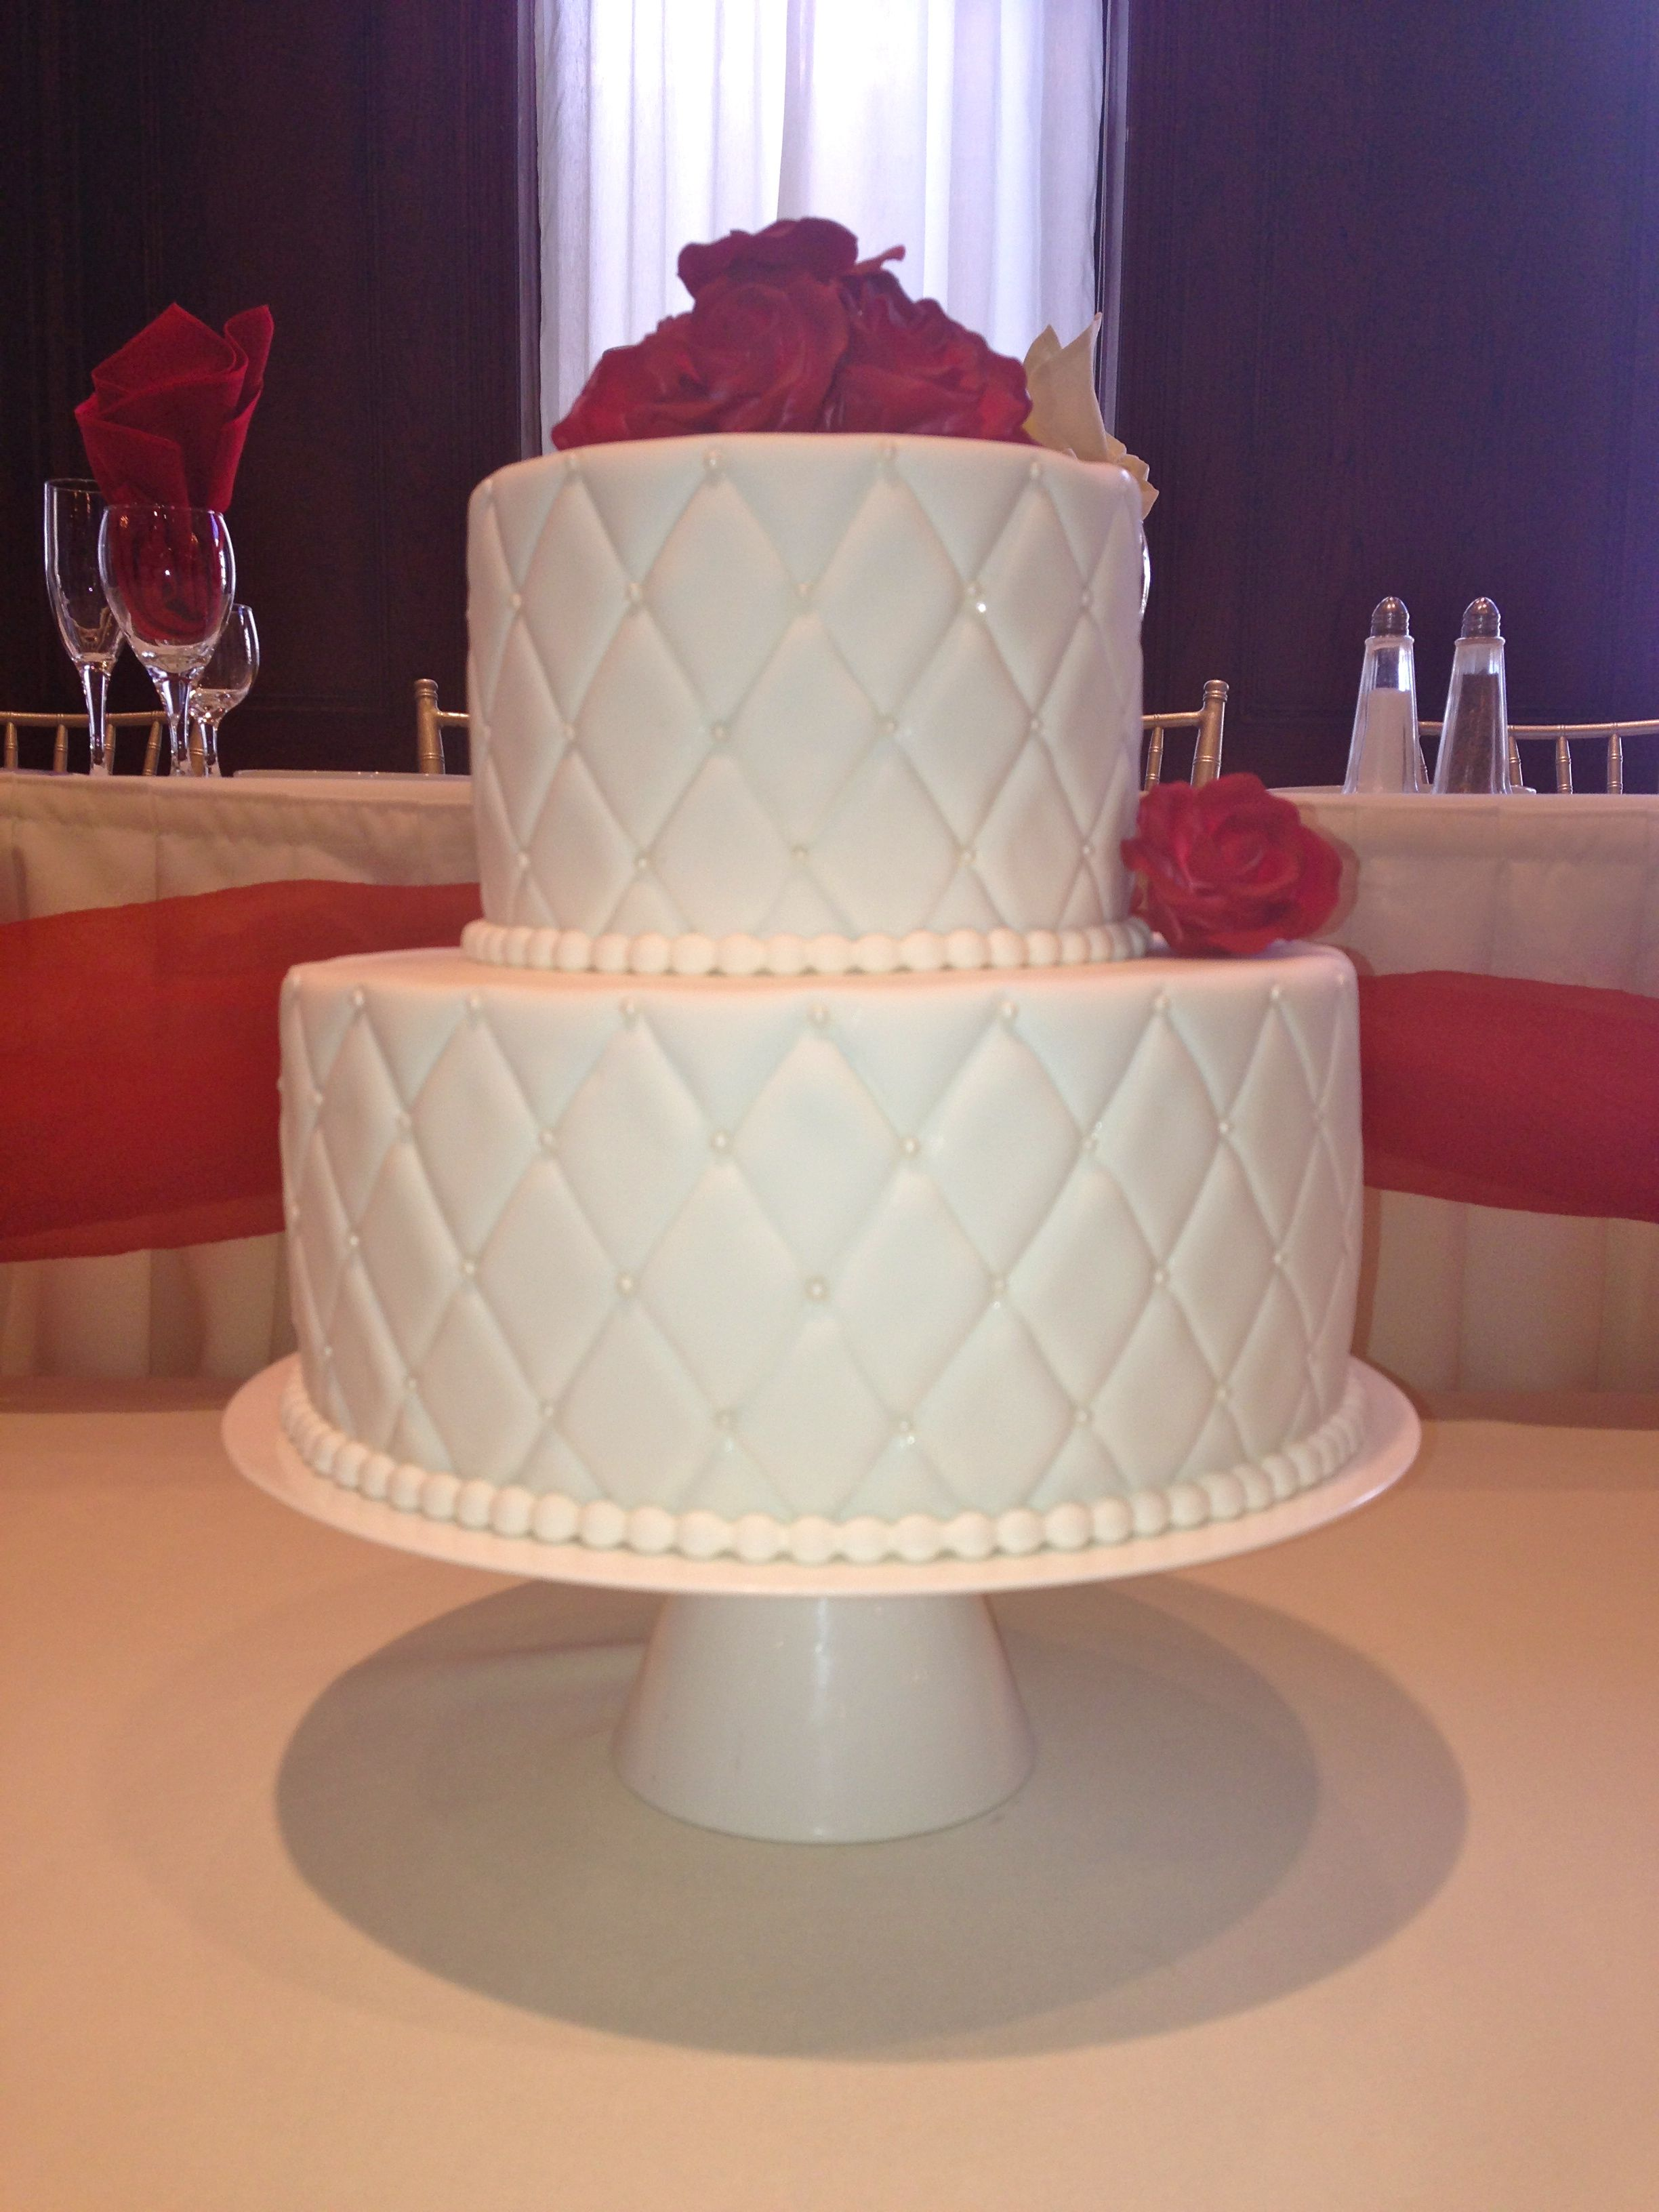 Classic all white 3-tier wedding cake with quilt pattern and a ... : wedding cake quilt pattern - Adamdwight.com